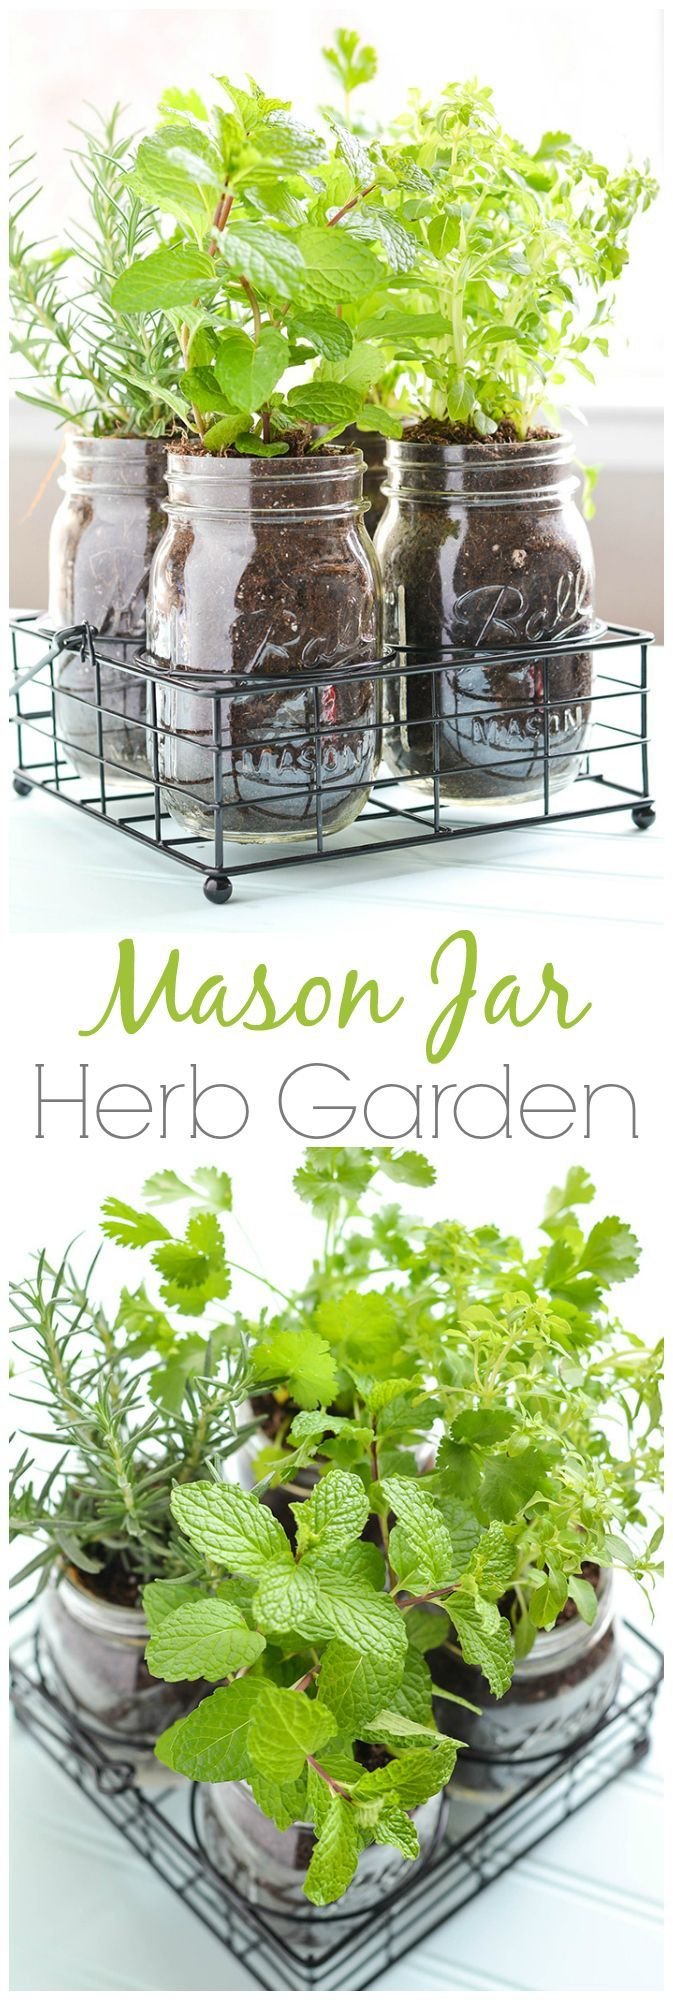 Diy herb garden made of pallets refresh your eyes and mind with pallet - Diy Herb Garden In Mason Jars Crafts Unleashed